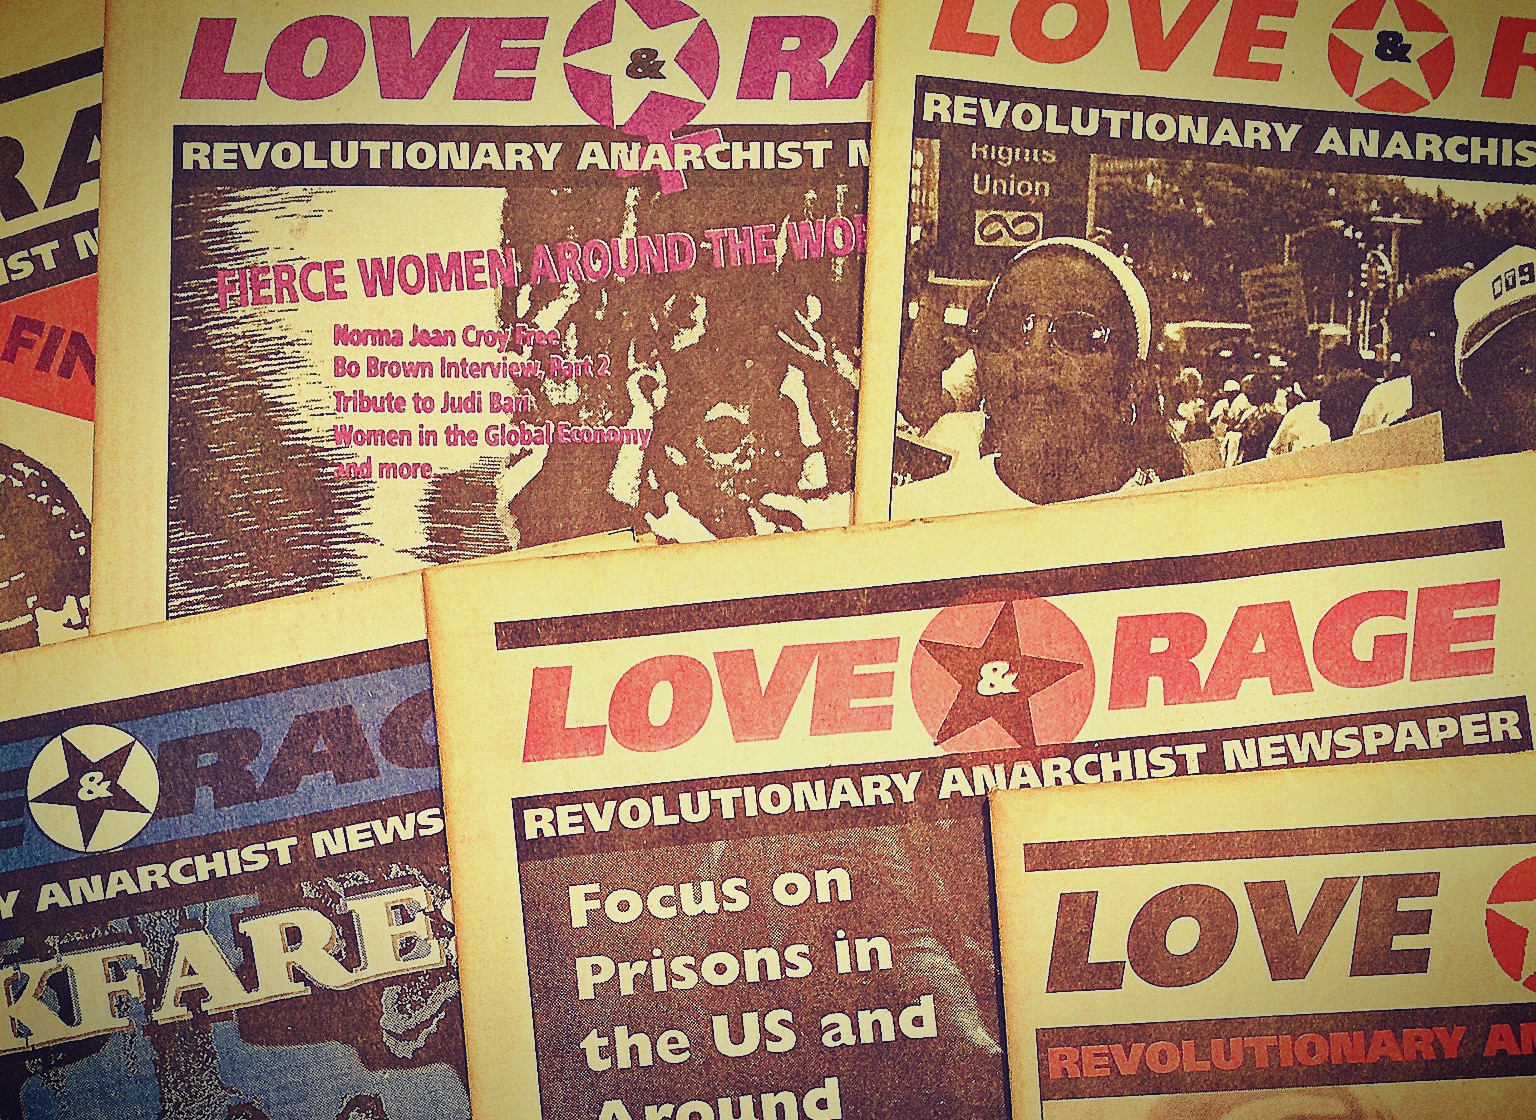 Photo of various issues of Love and Rage newspaper.